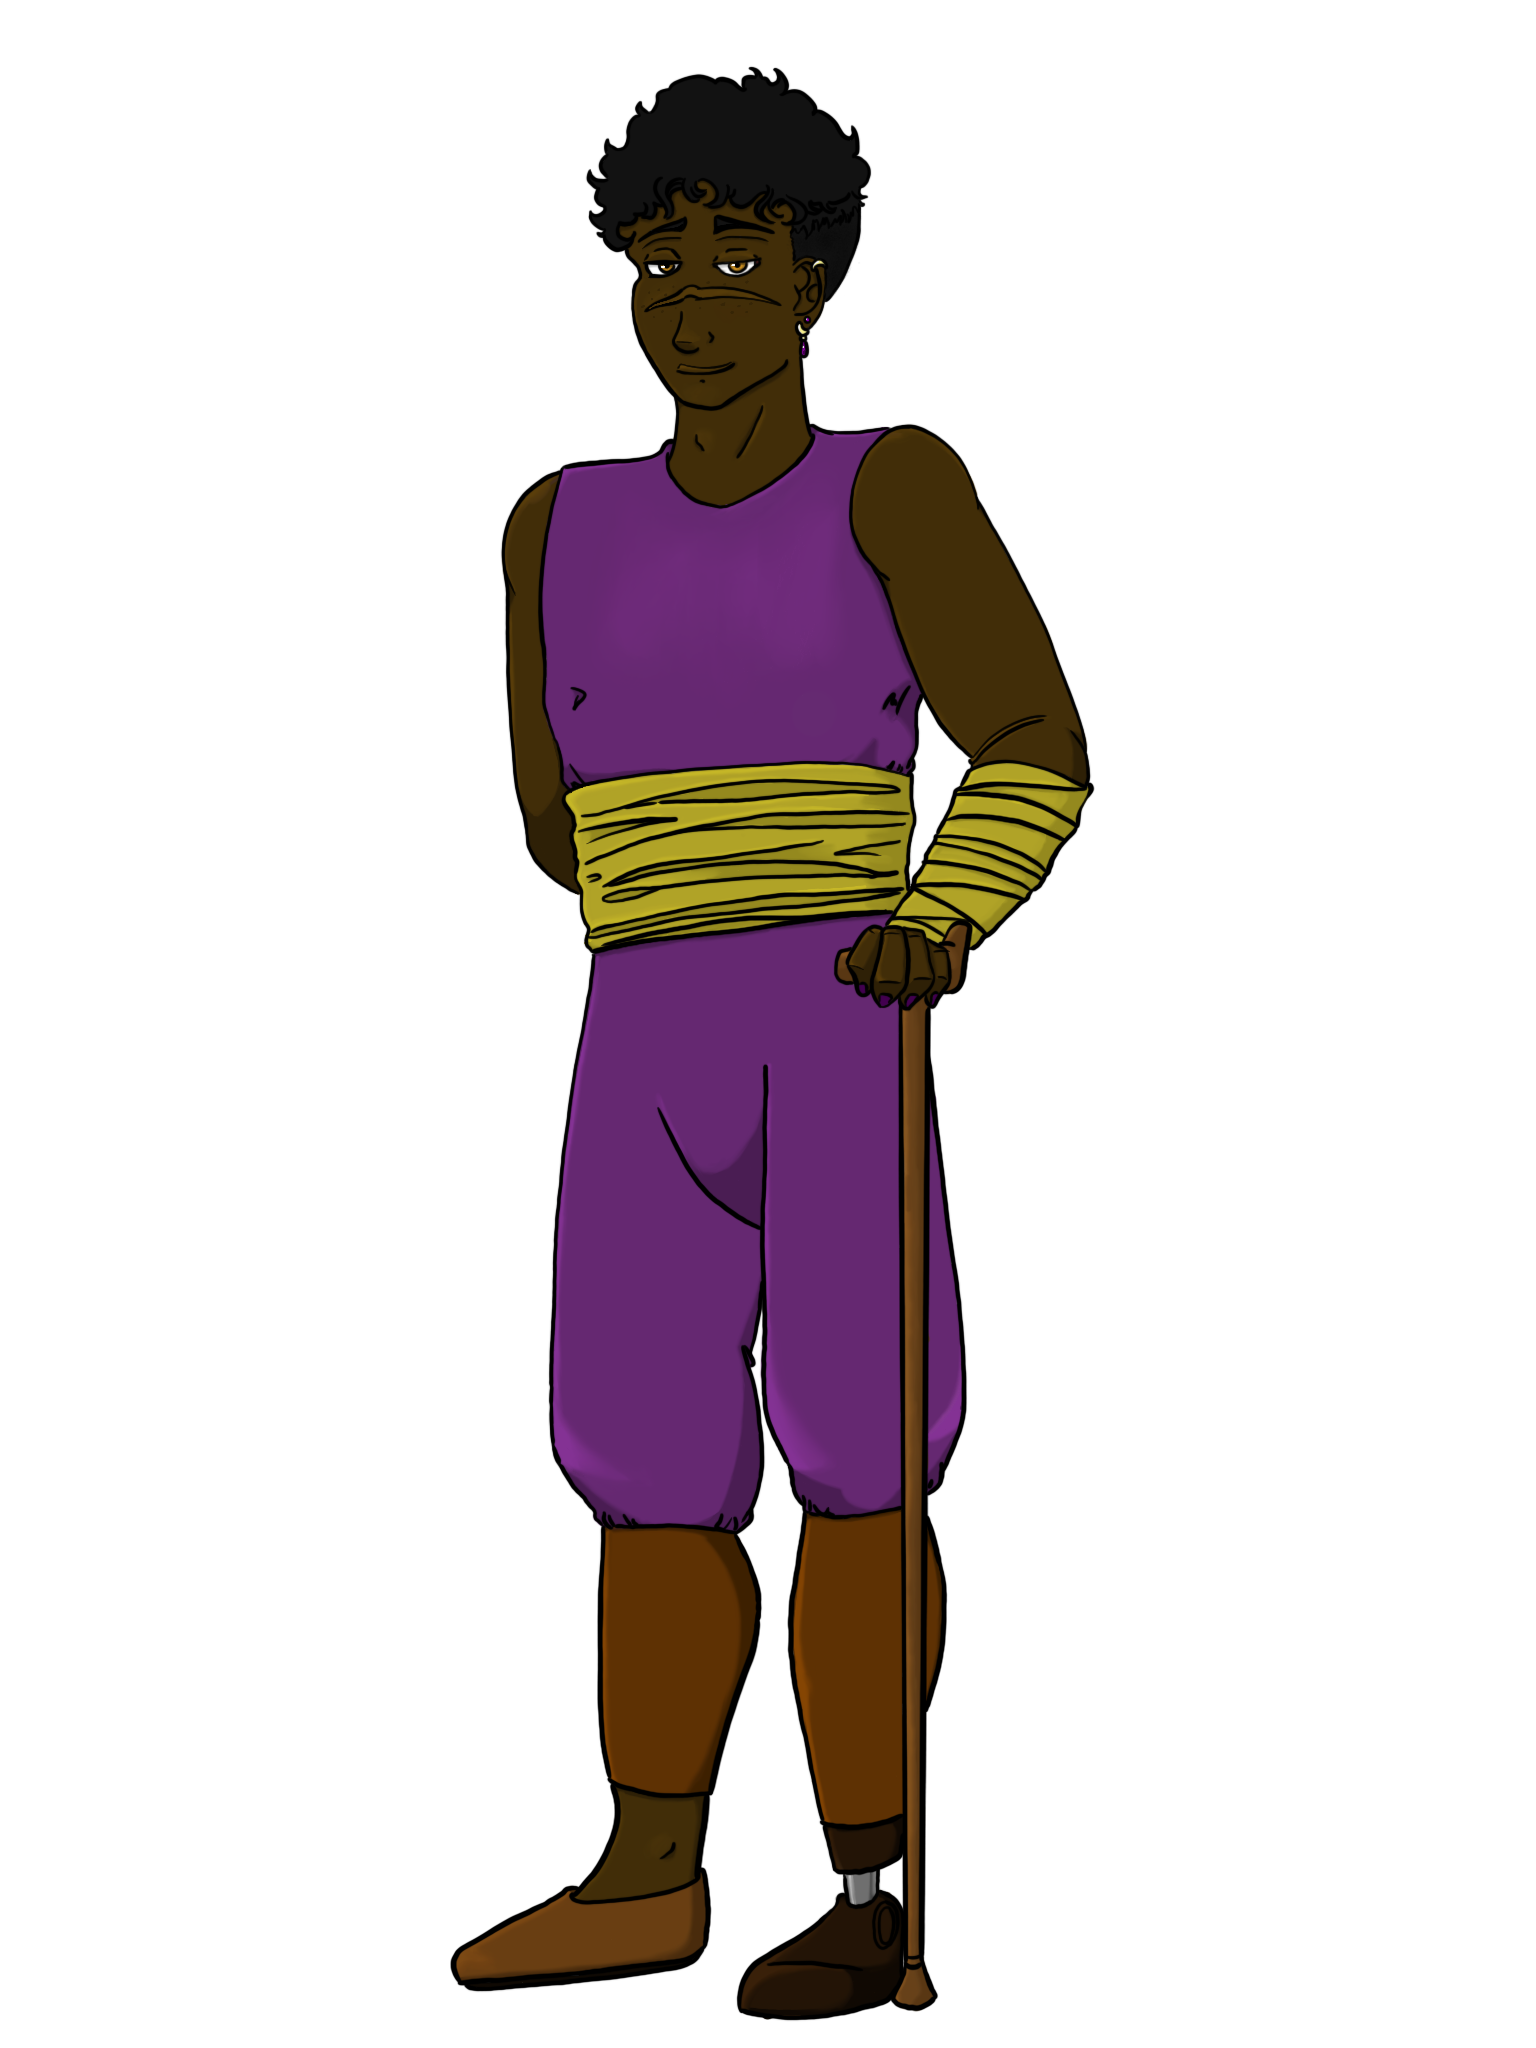 An illustration of a brown skinned man with short curly brown hair and a wooden prosthetic leg.